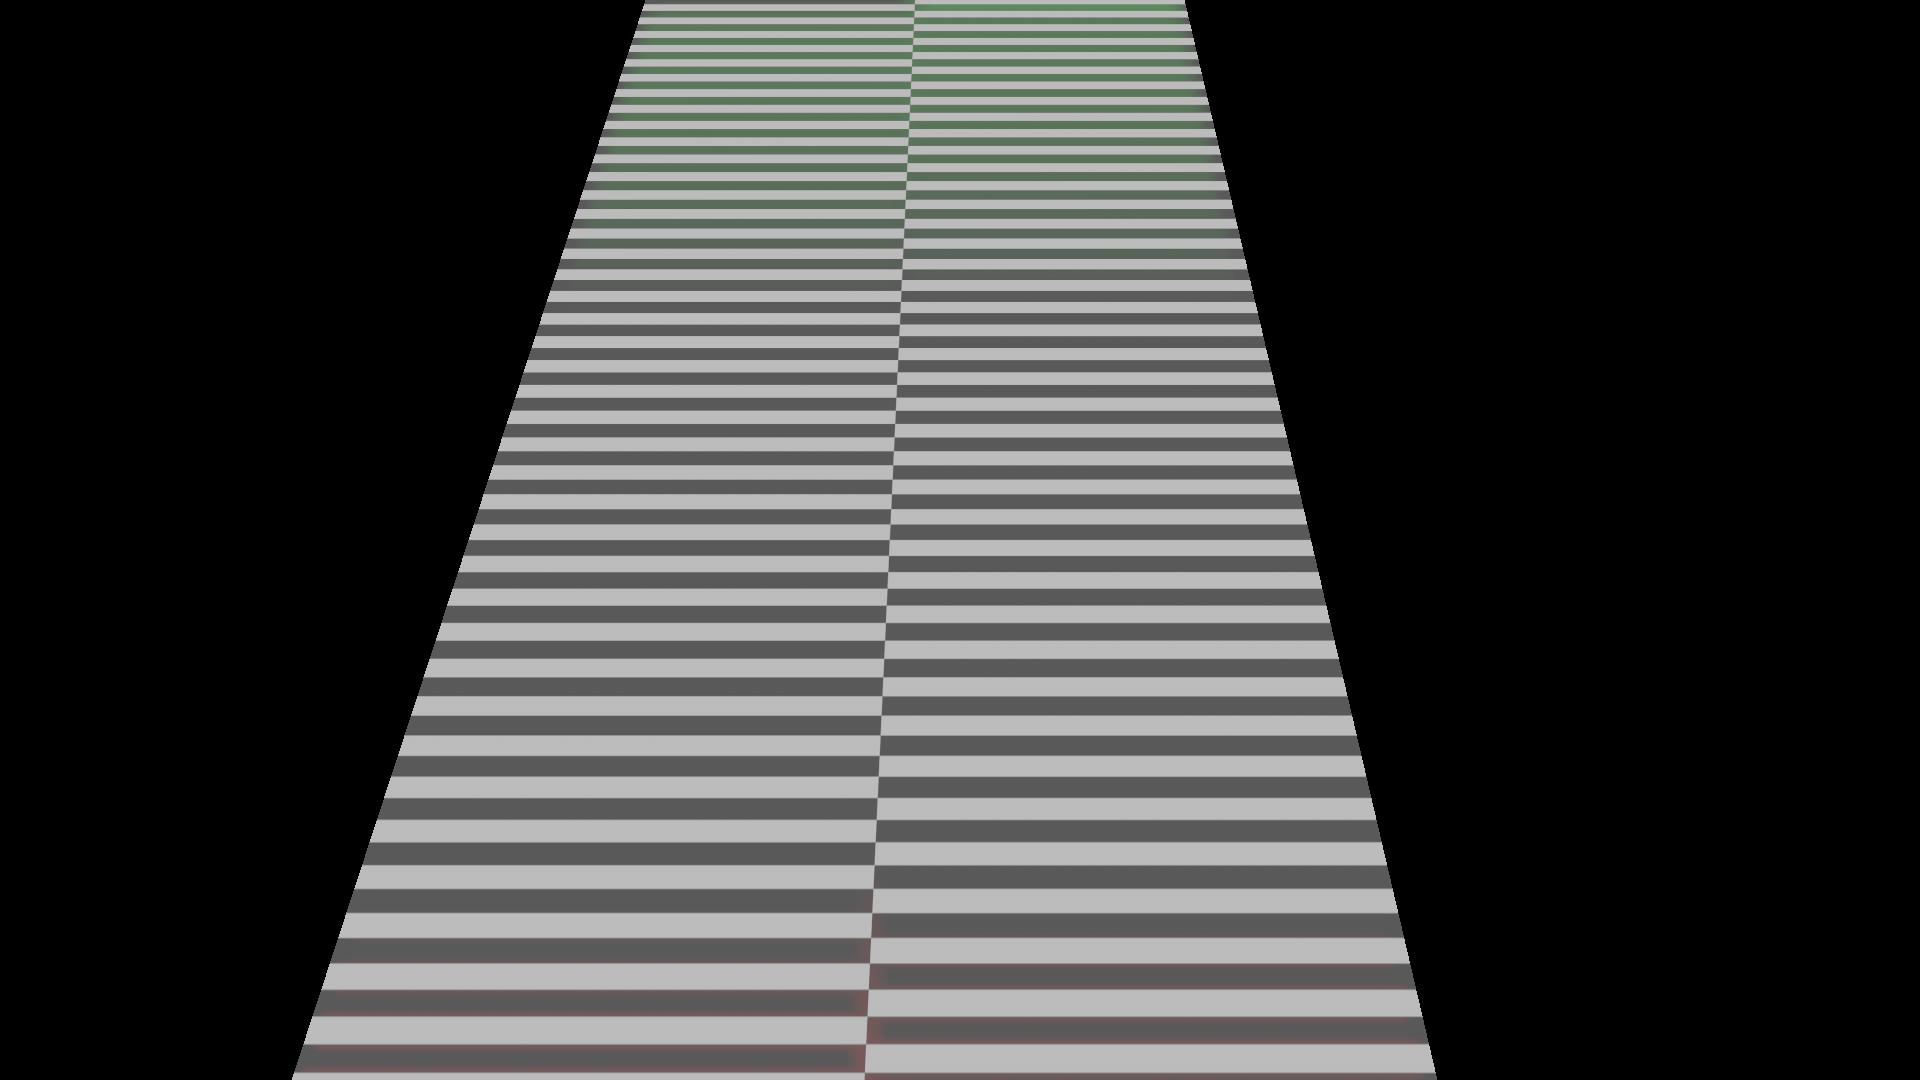 Axial_Chromatic_Aberration.jpg